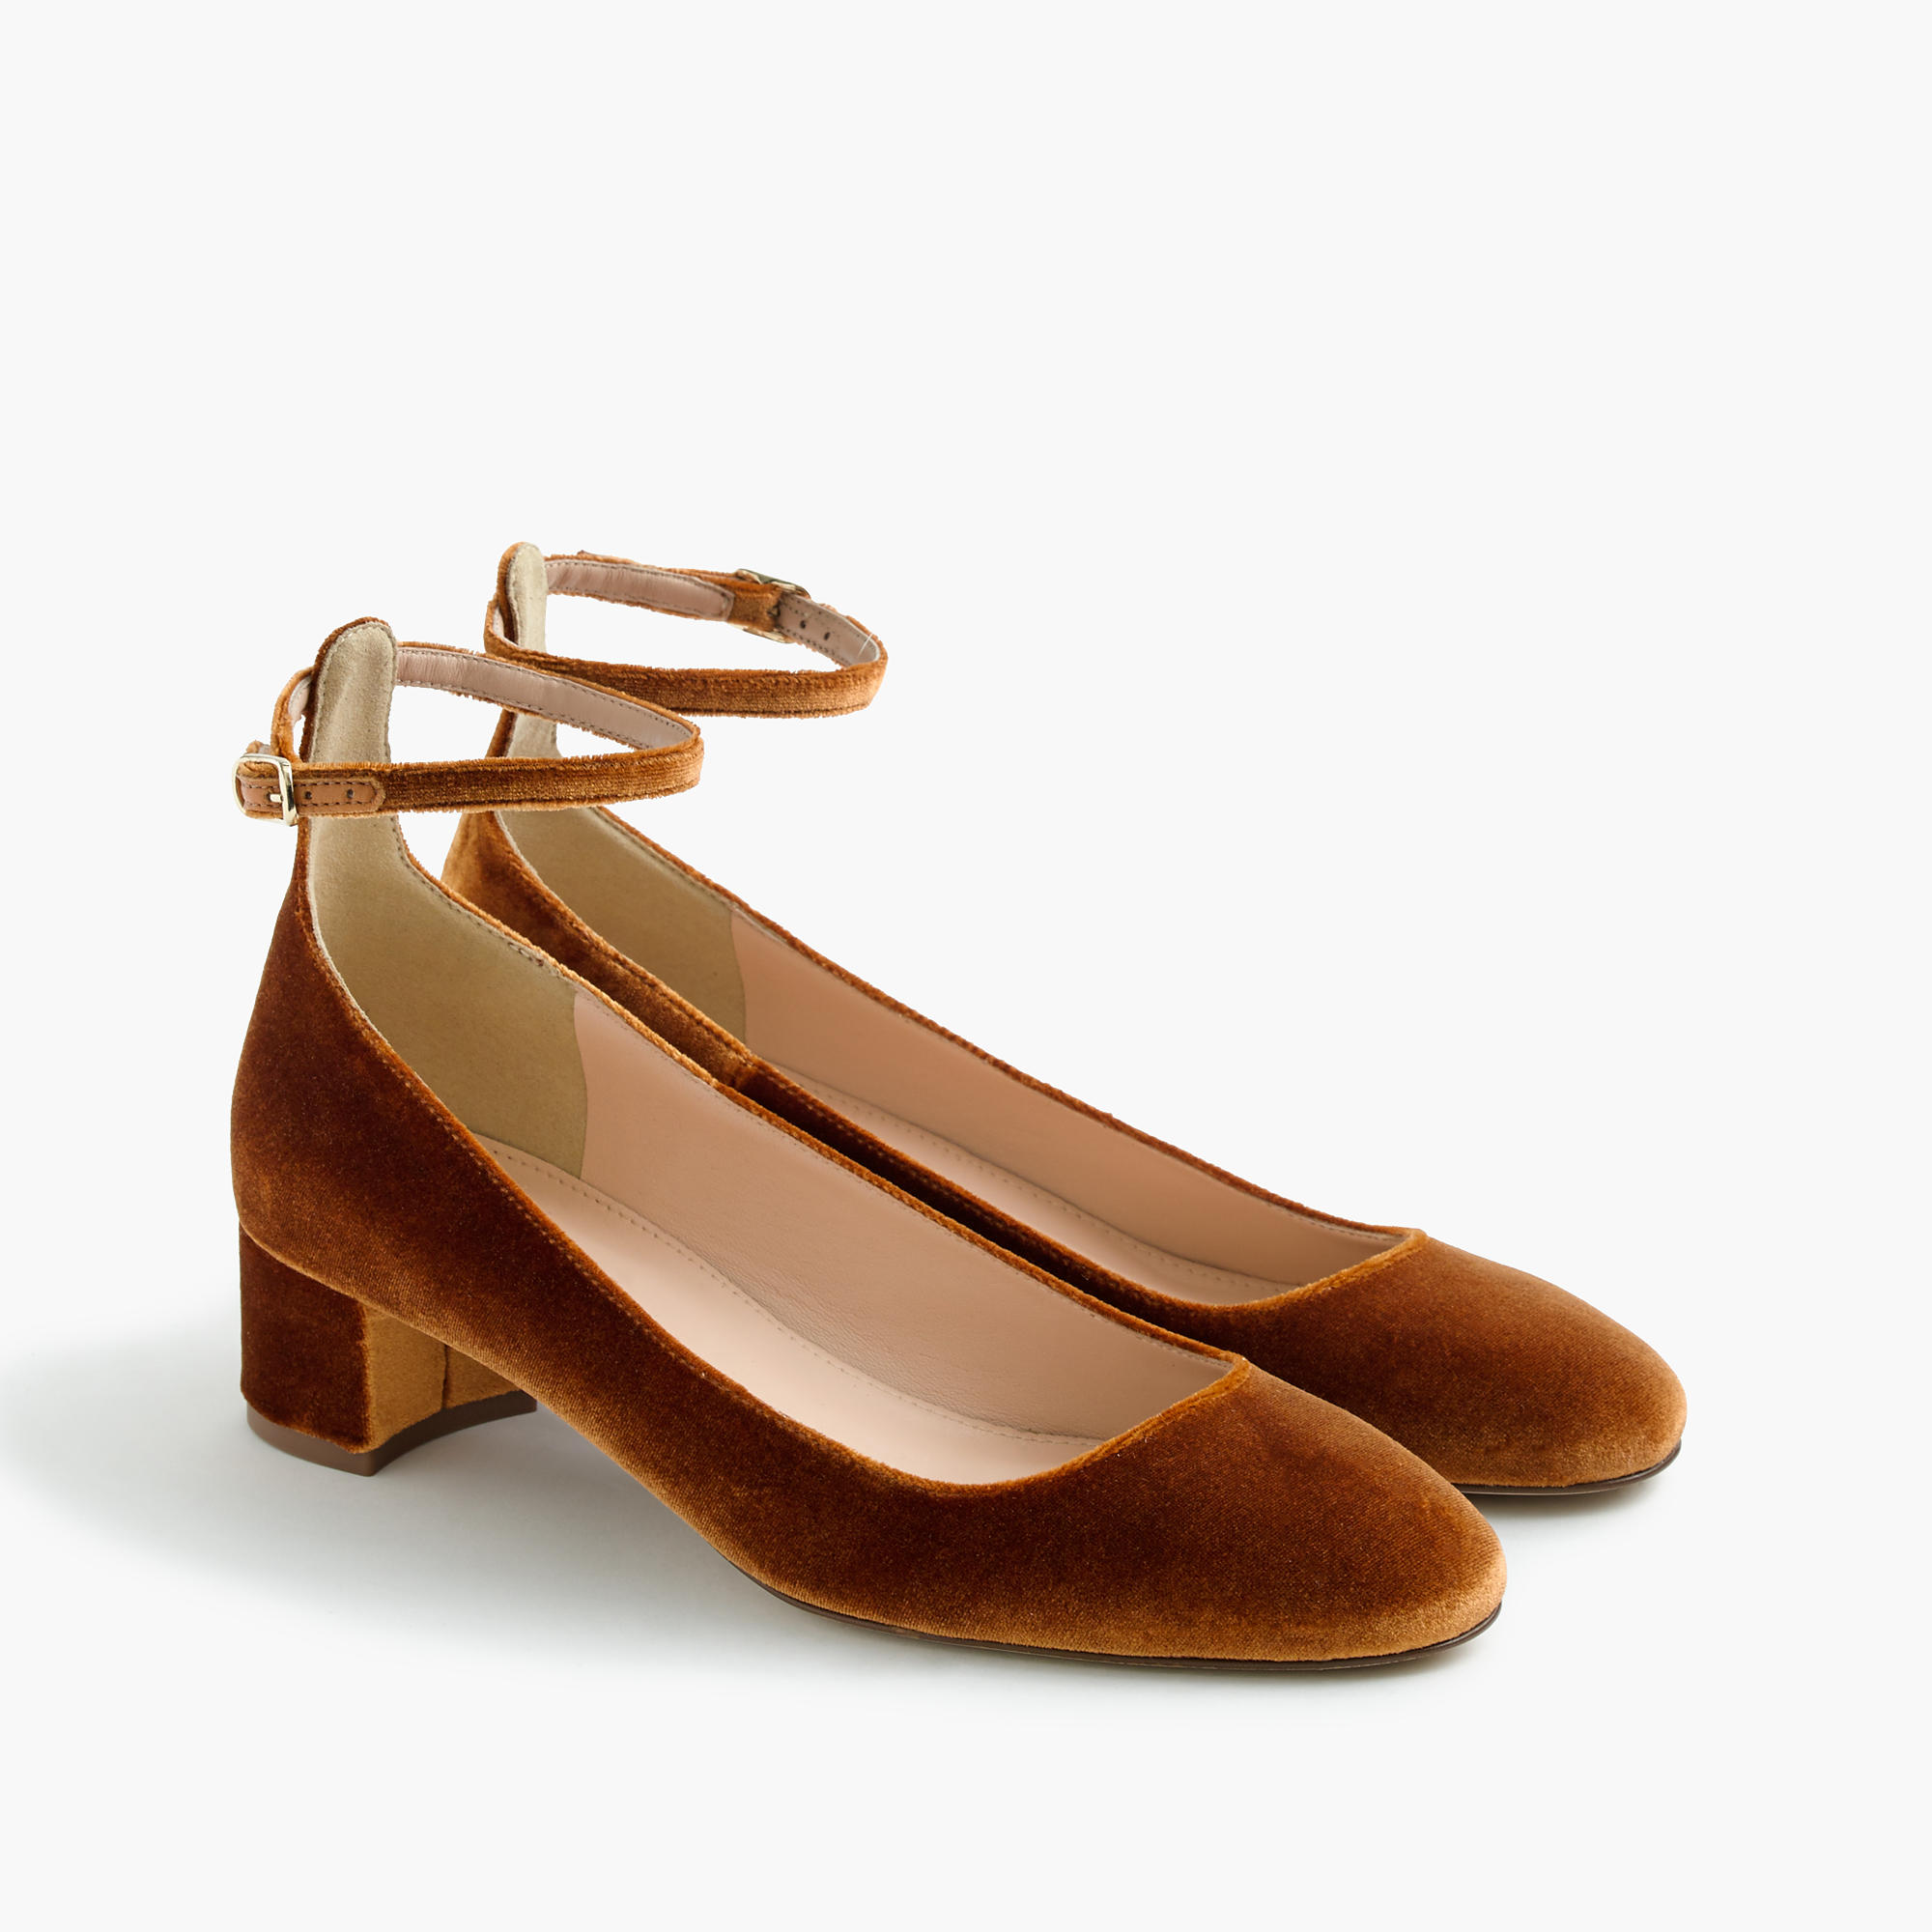 10bcf57e73a I Slid Into J.Crew s DMs and Now I Have These Sold-Out Velvet Shoes